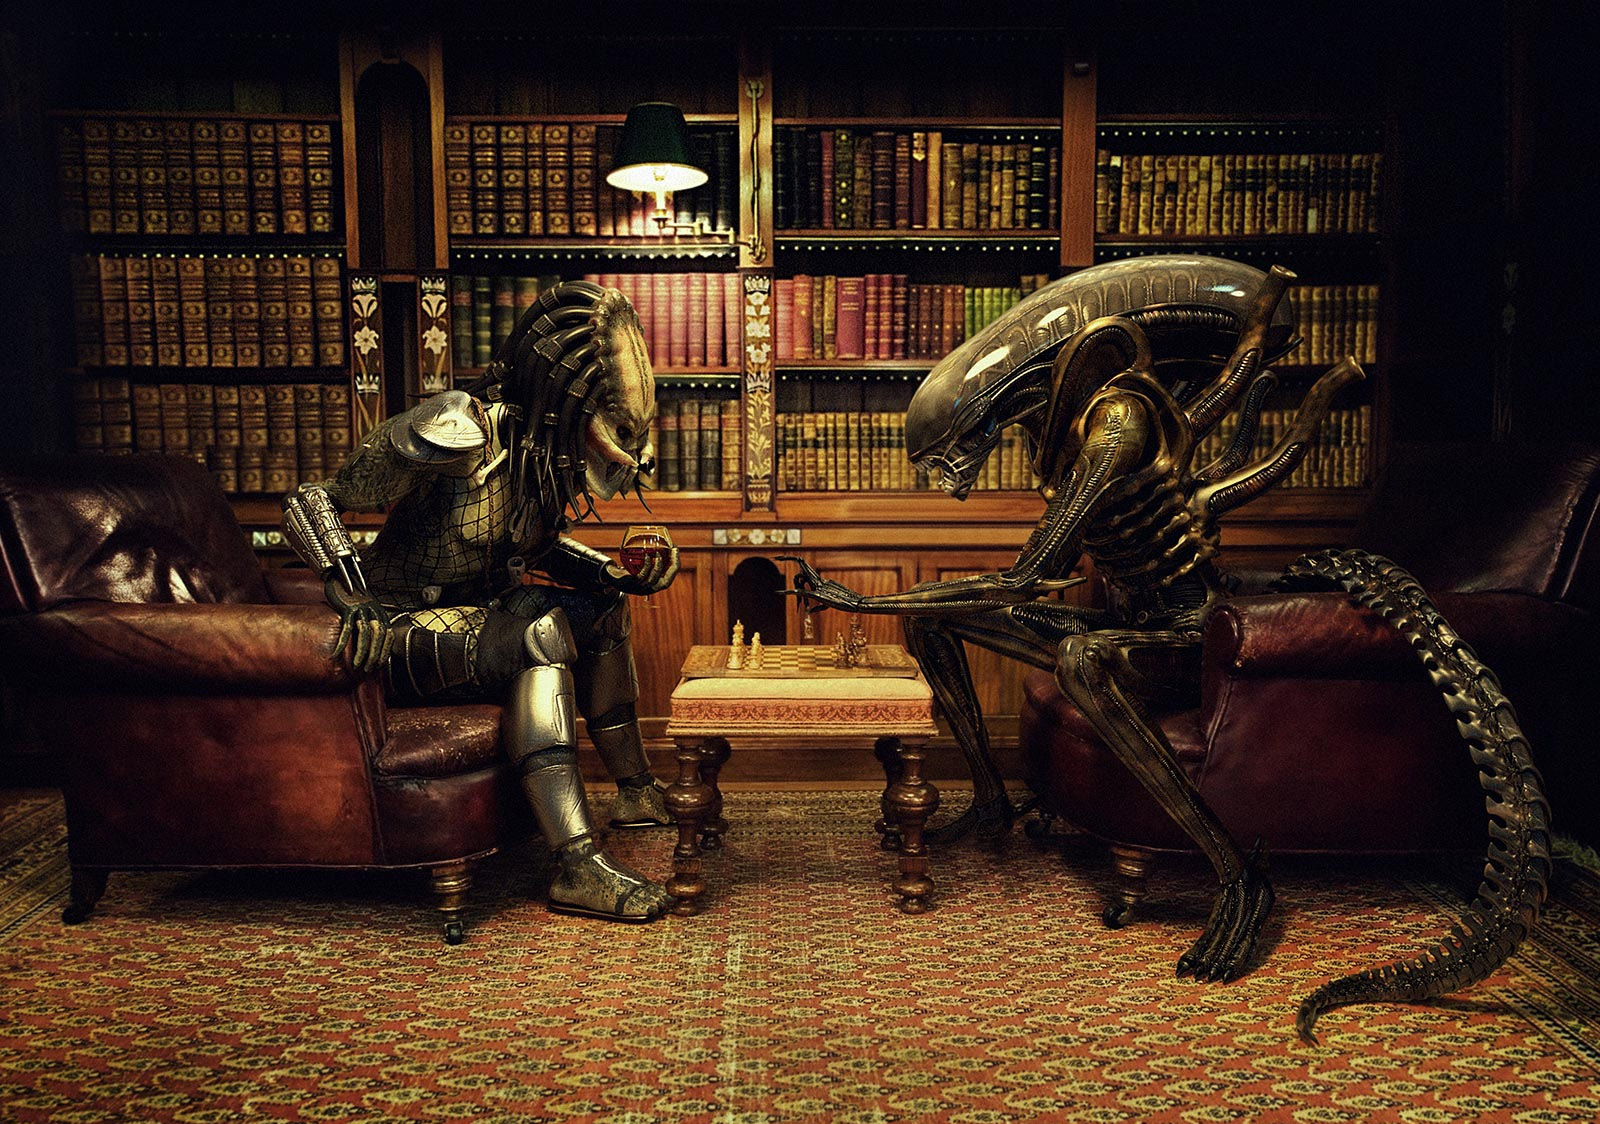 http://coolvibe.com/wp-content/uploads/2010/12/alien_vs_predator_chess.jpg